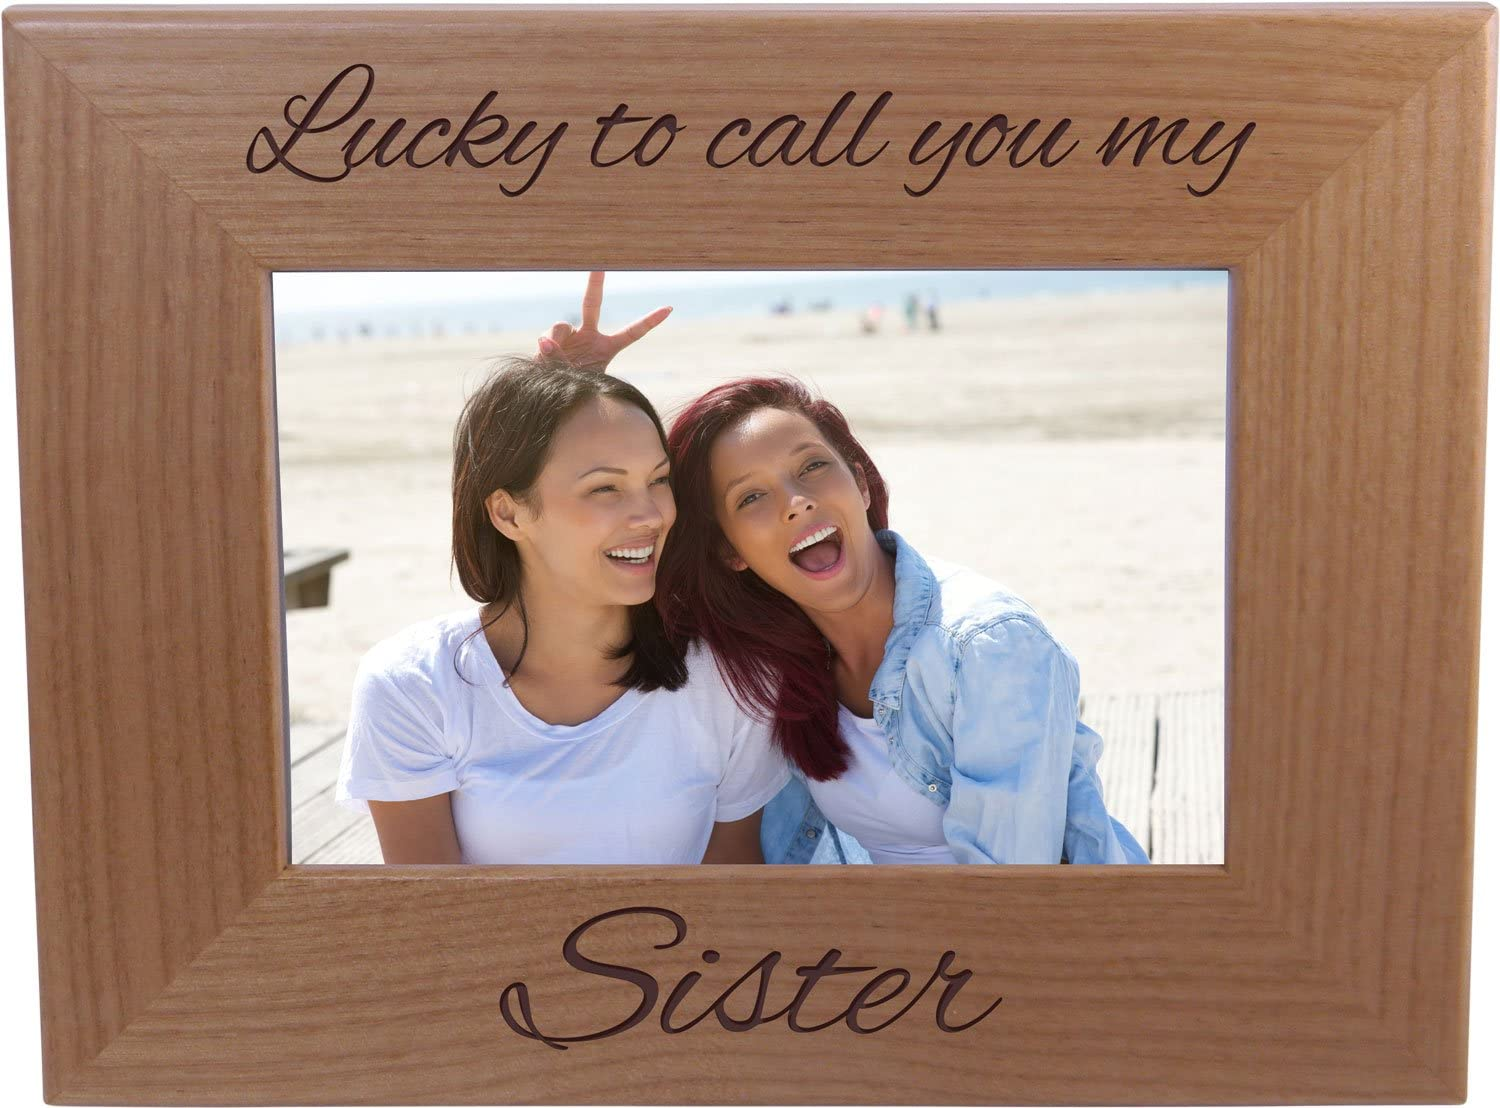 Lucky to call you my sister 4x6 Inch Wood Picture Frame - Great Gift for Birthday, or Christmas Gift for Sister, Sisters